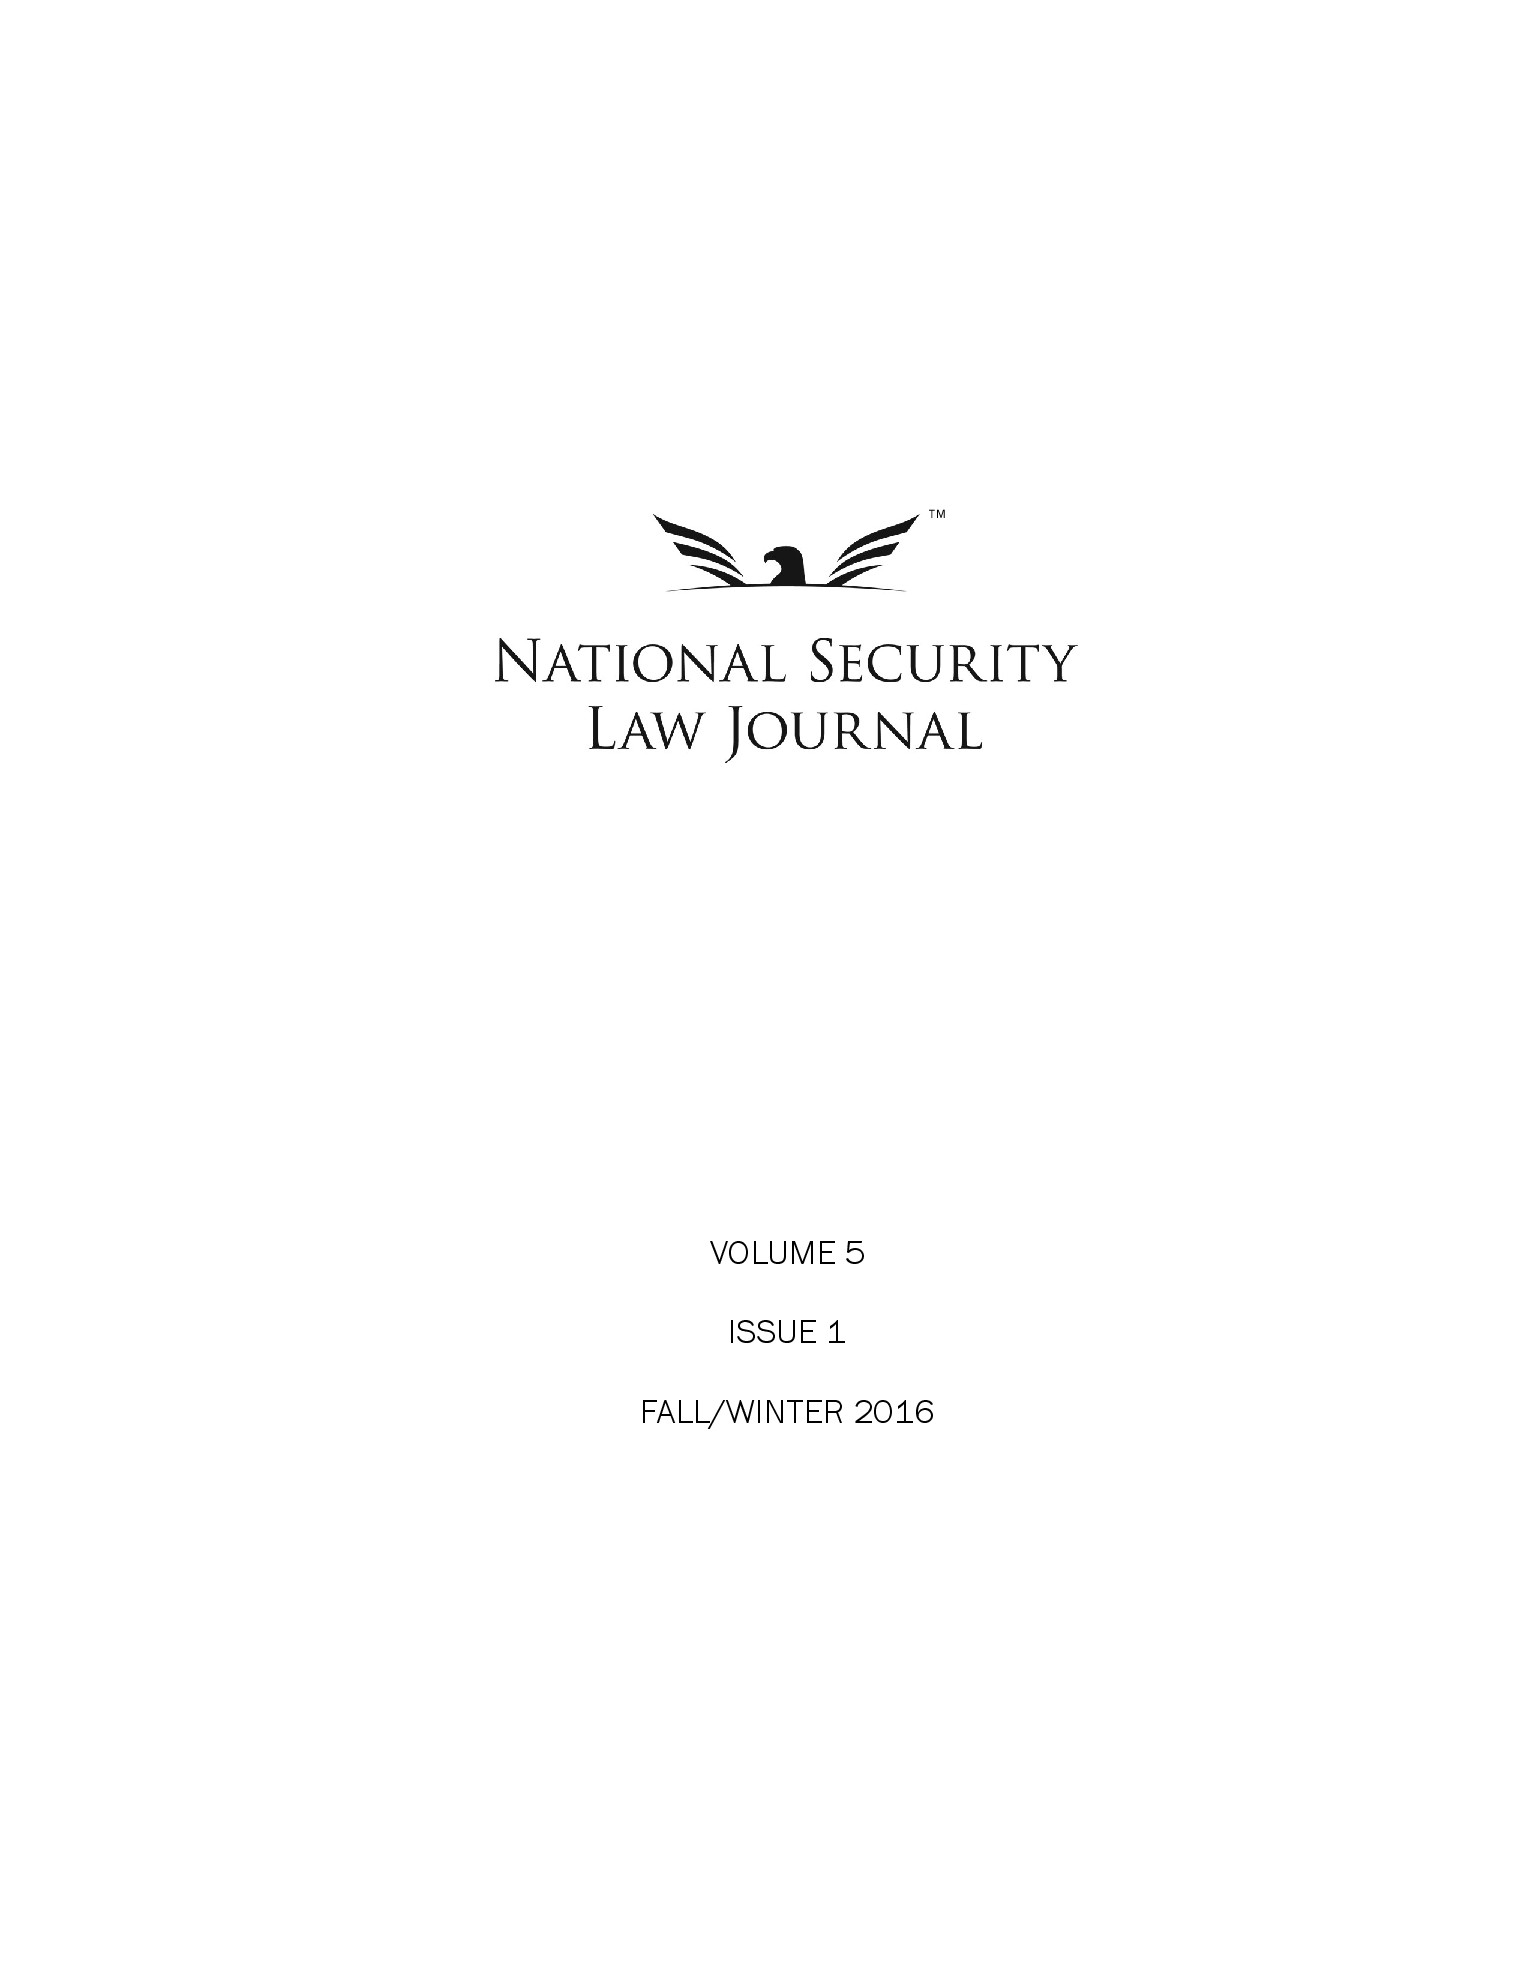 NSLJ Vol. 5 Iss. 1 Title Page